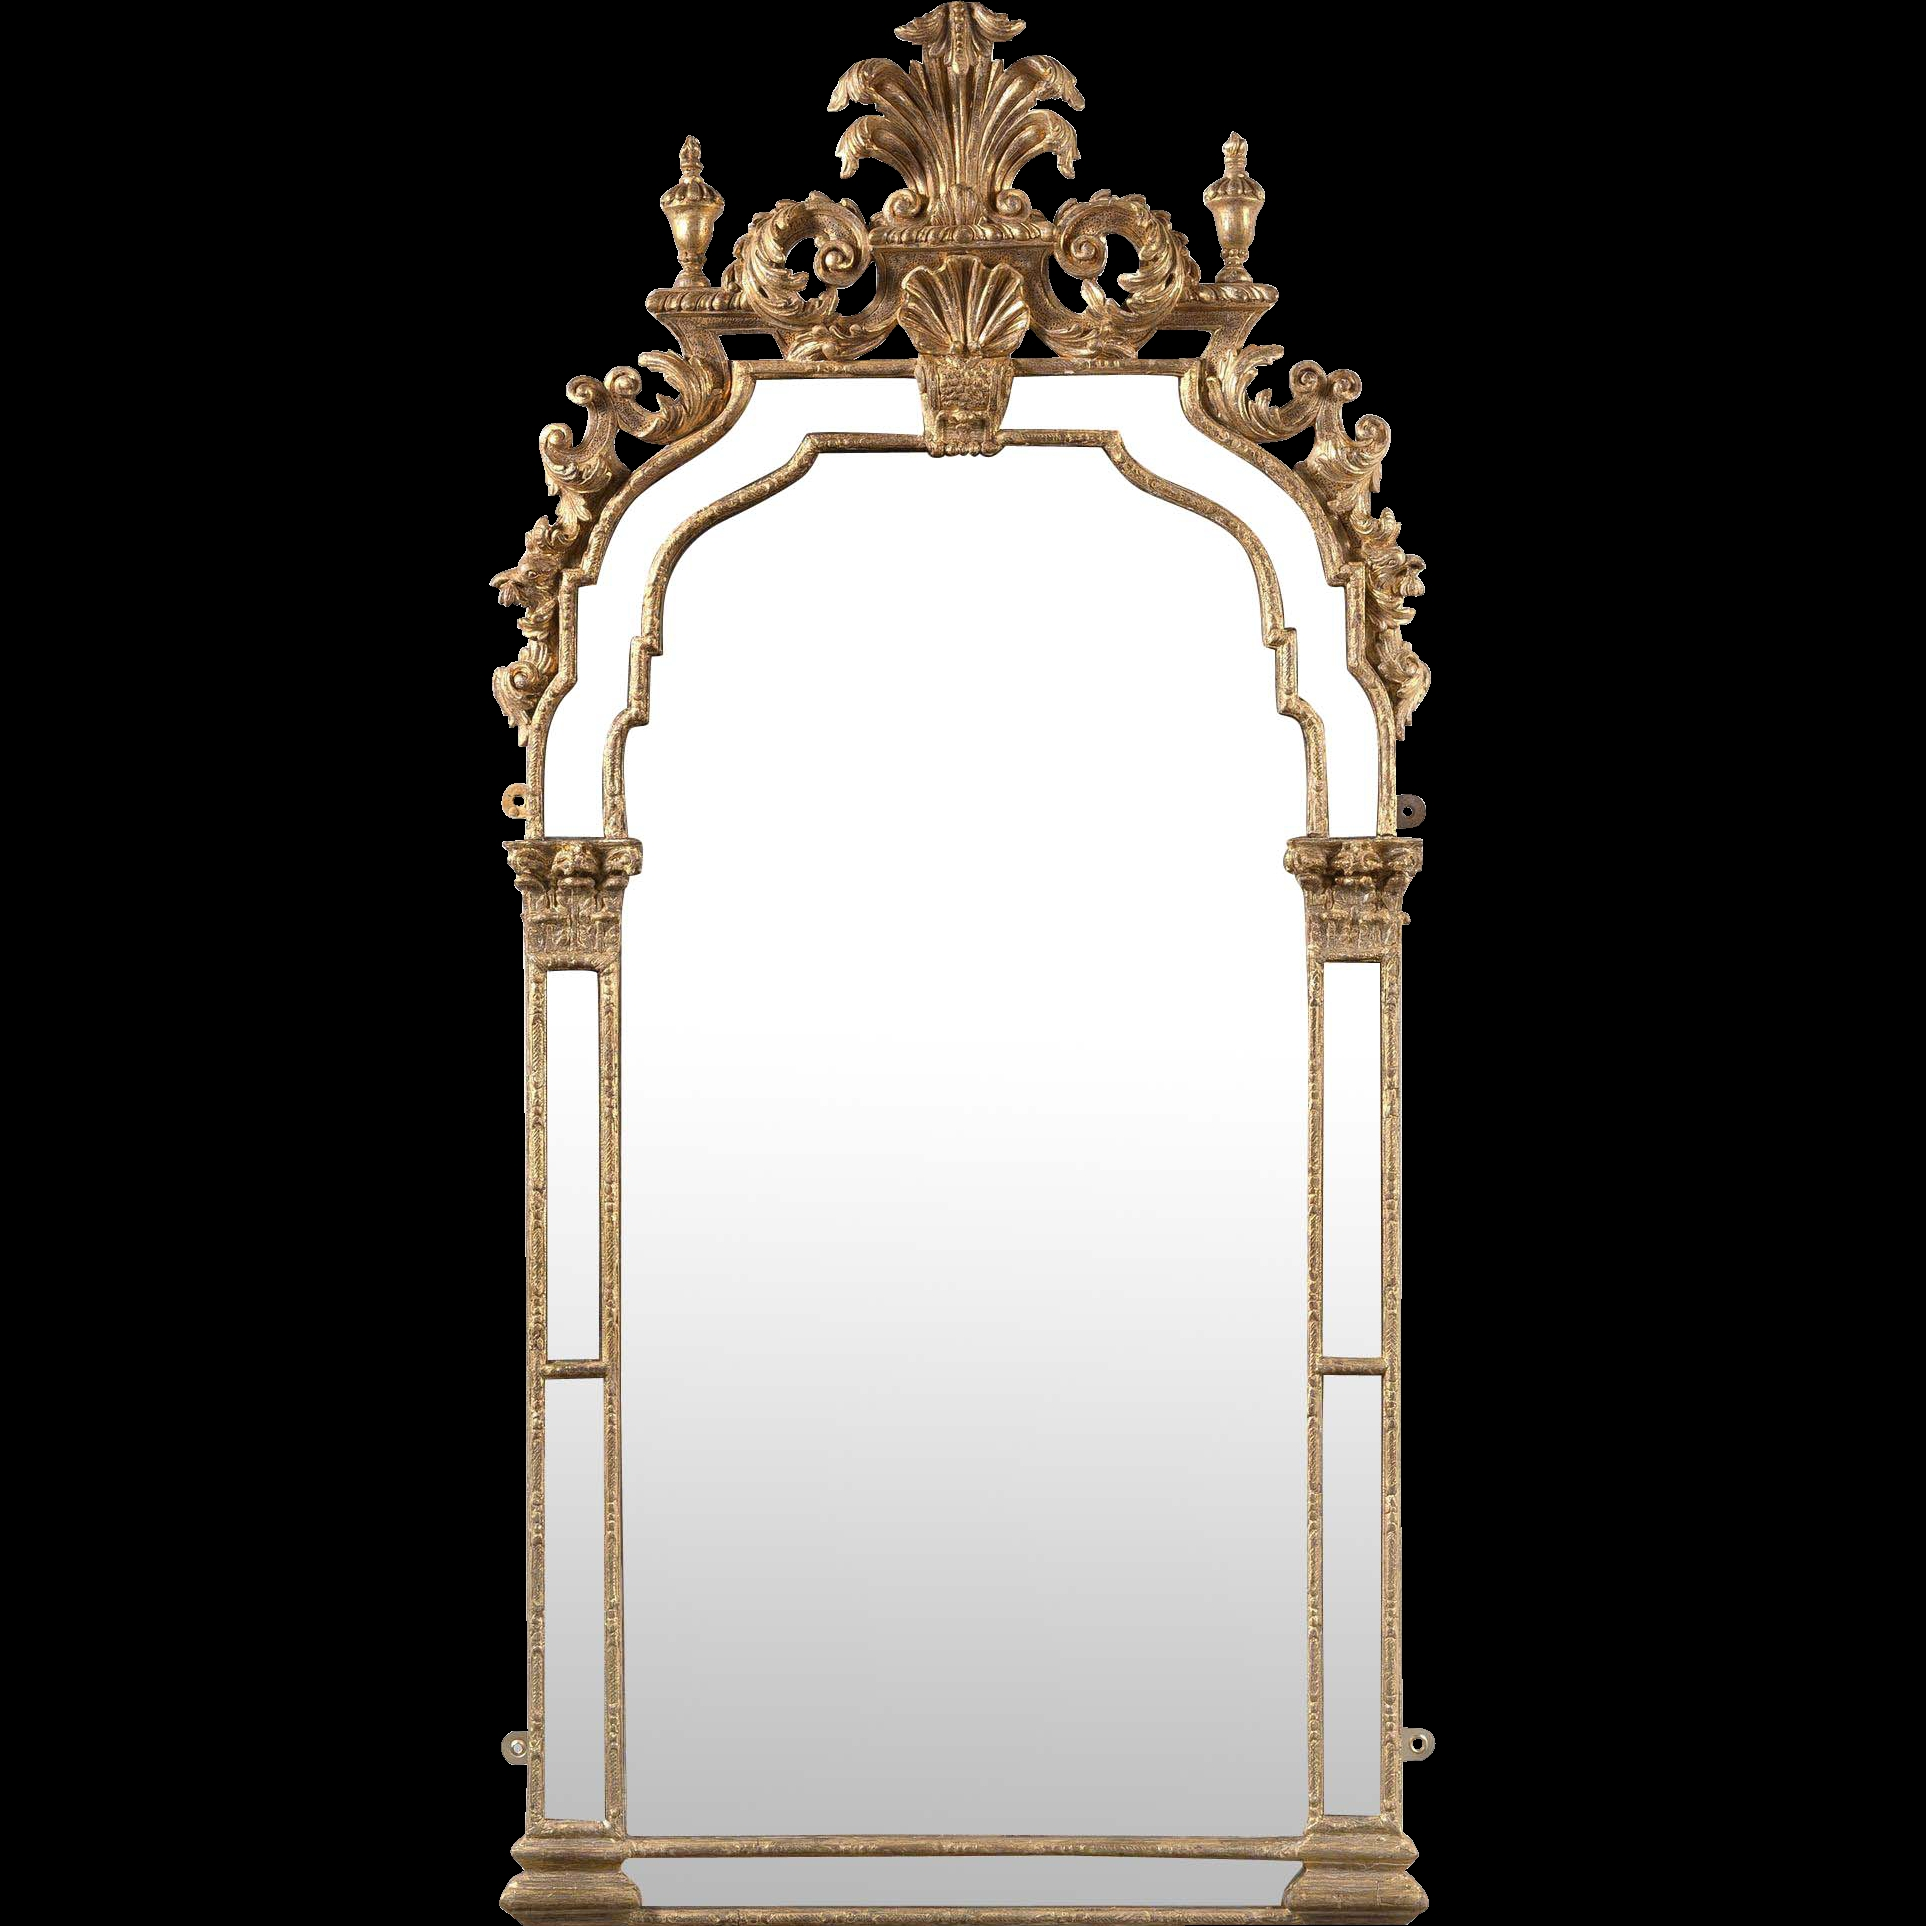 Baroque Mirror From Clinton Howell On Rulux In Baroque Mirror (Image 5 of 15)